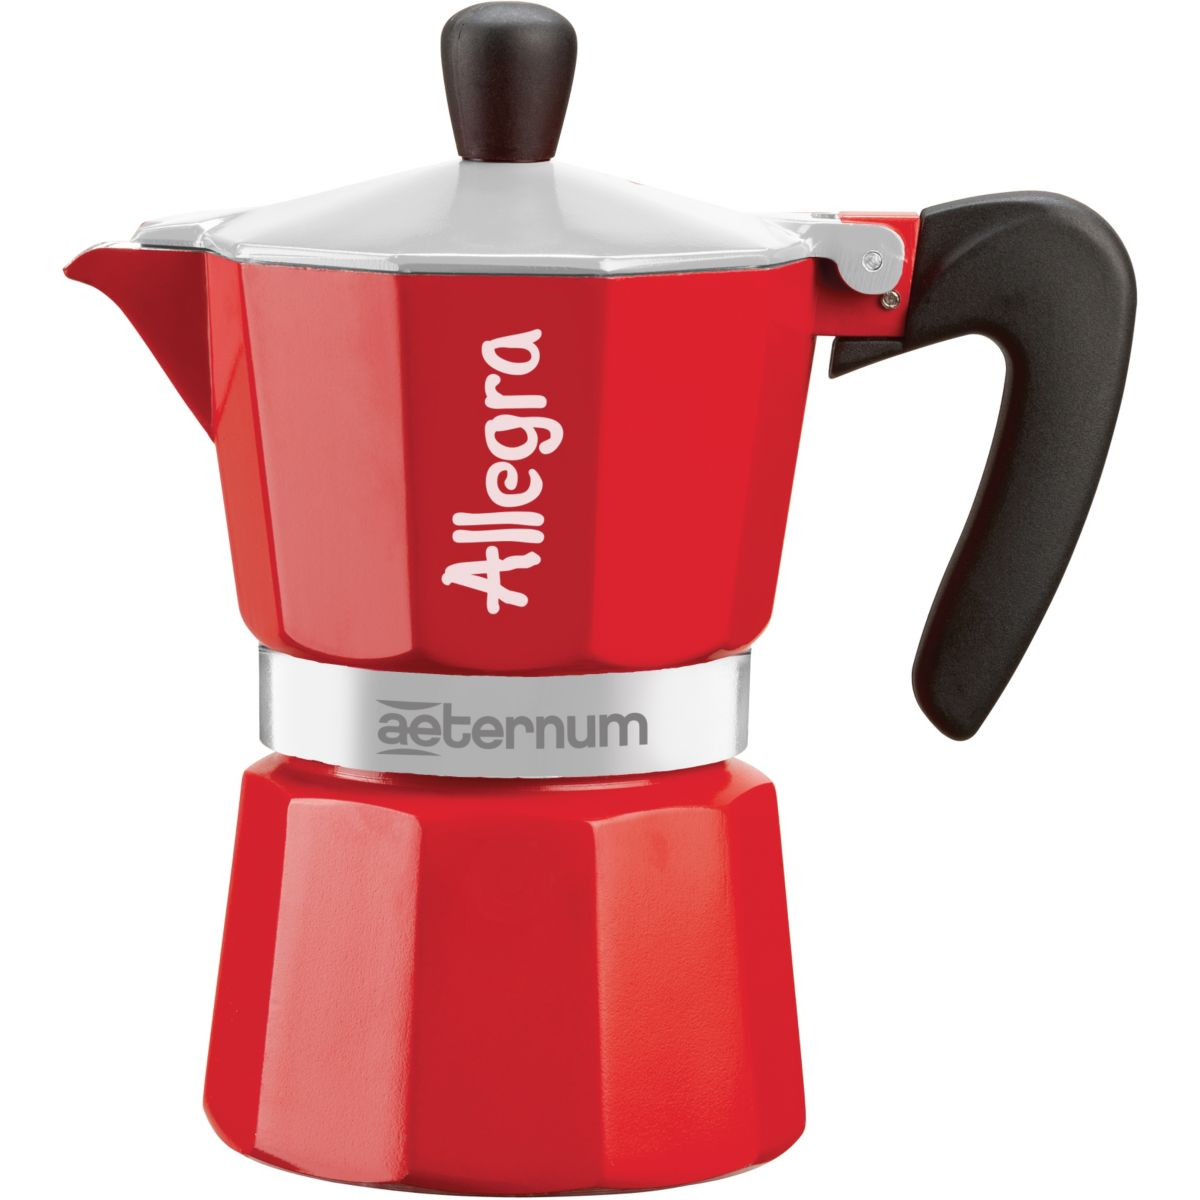 Cafetière bialetti allegra in sleeve 3 tasses red (photo)